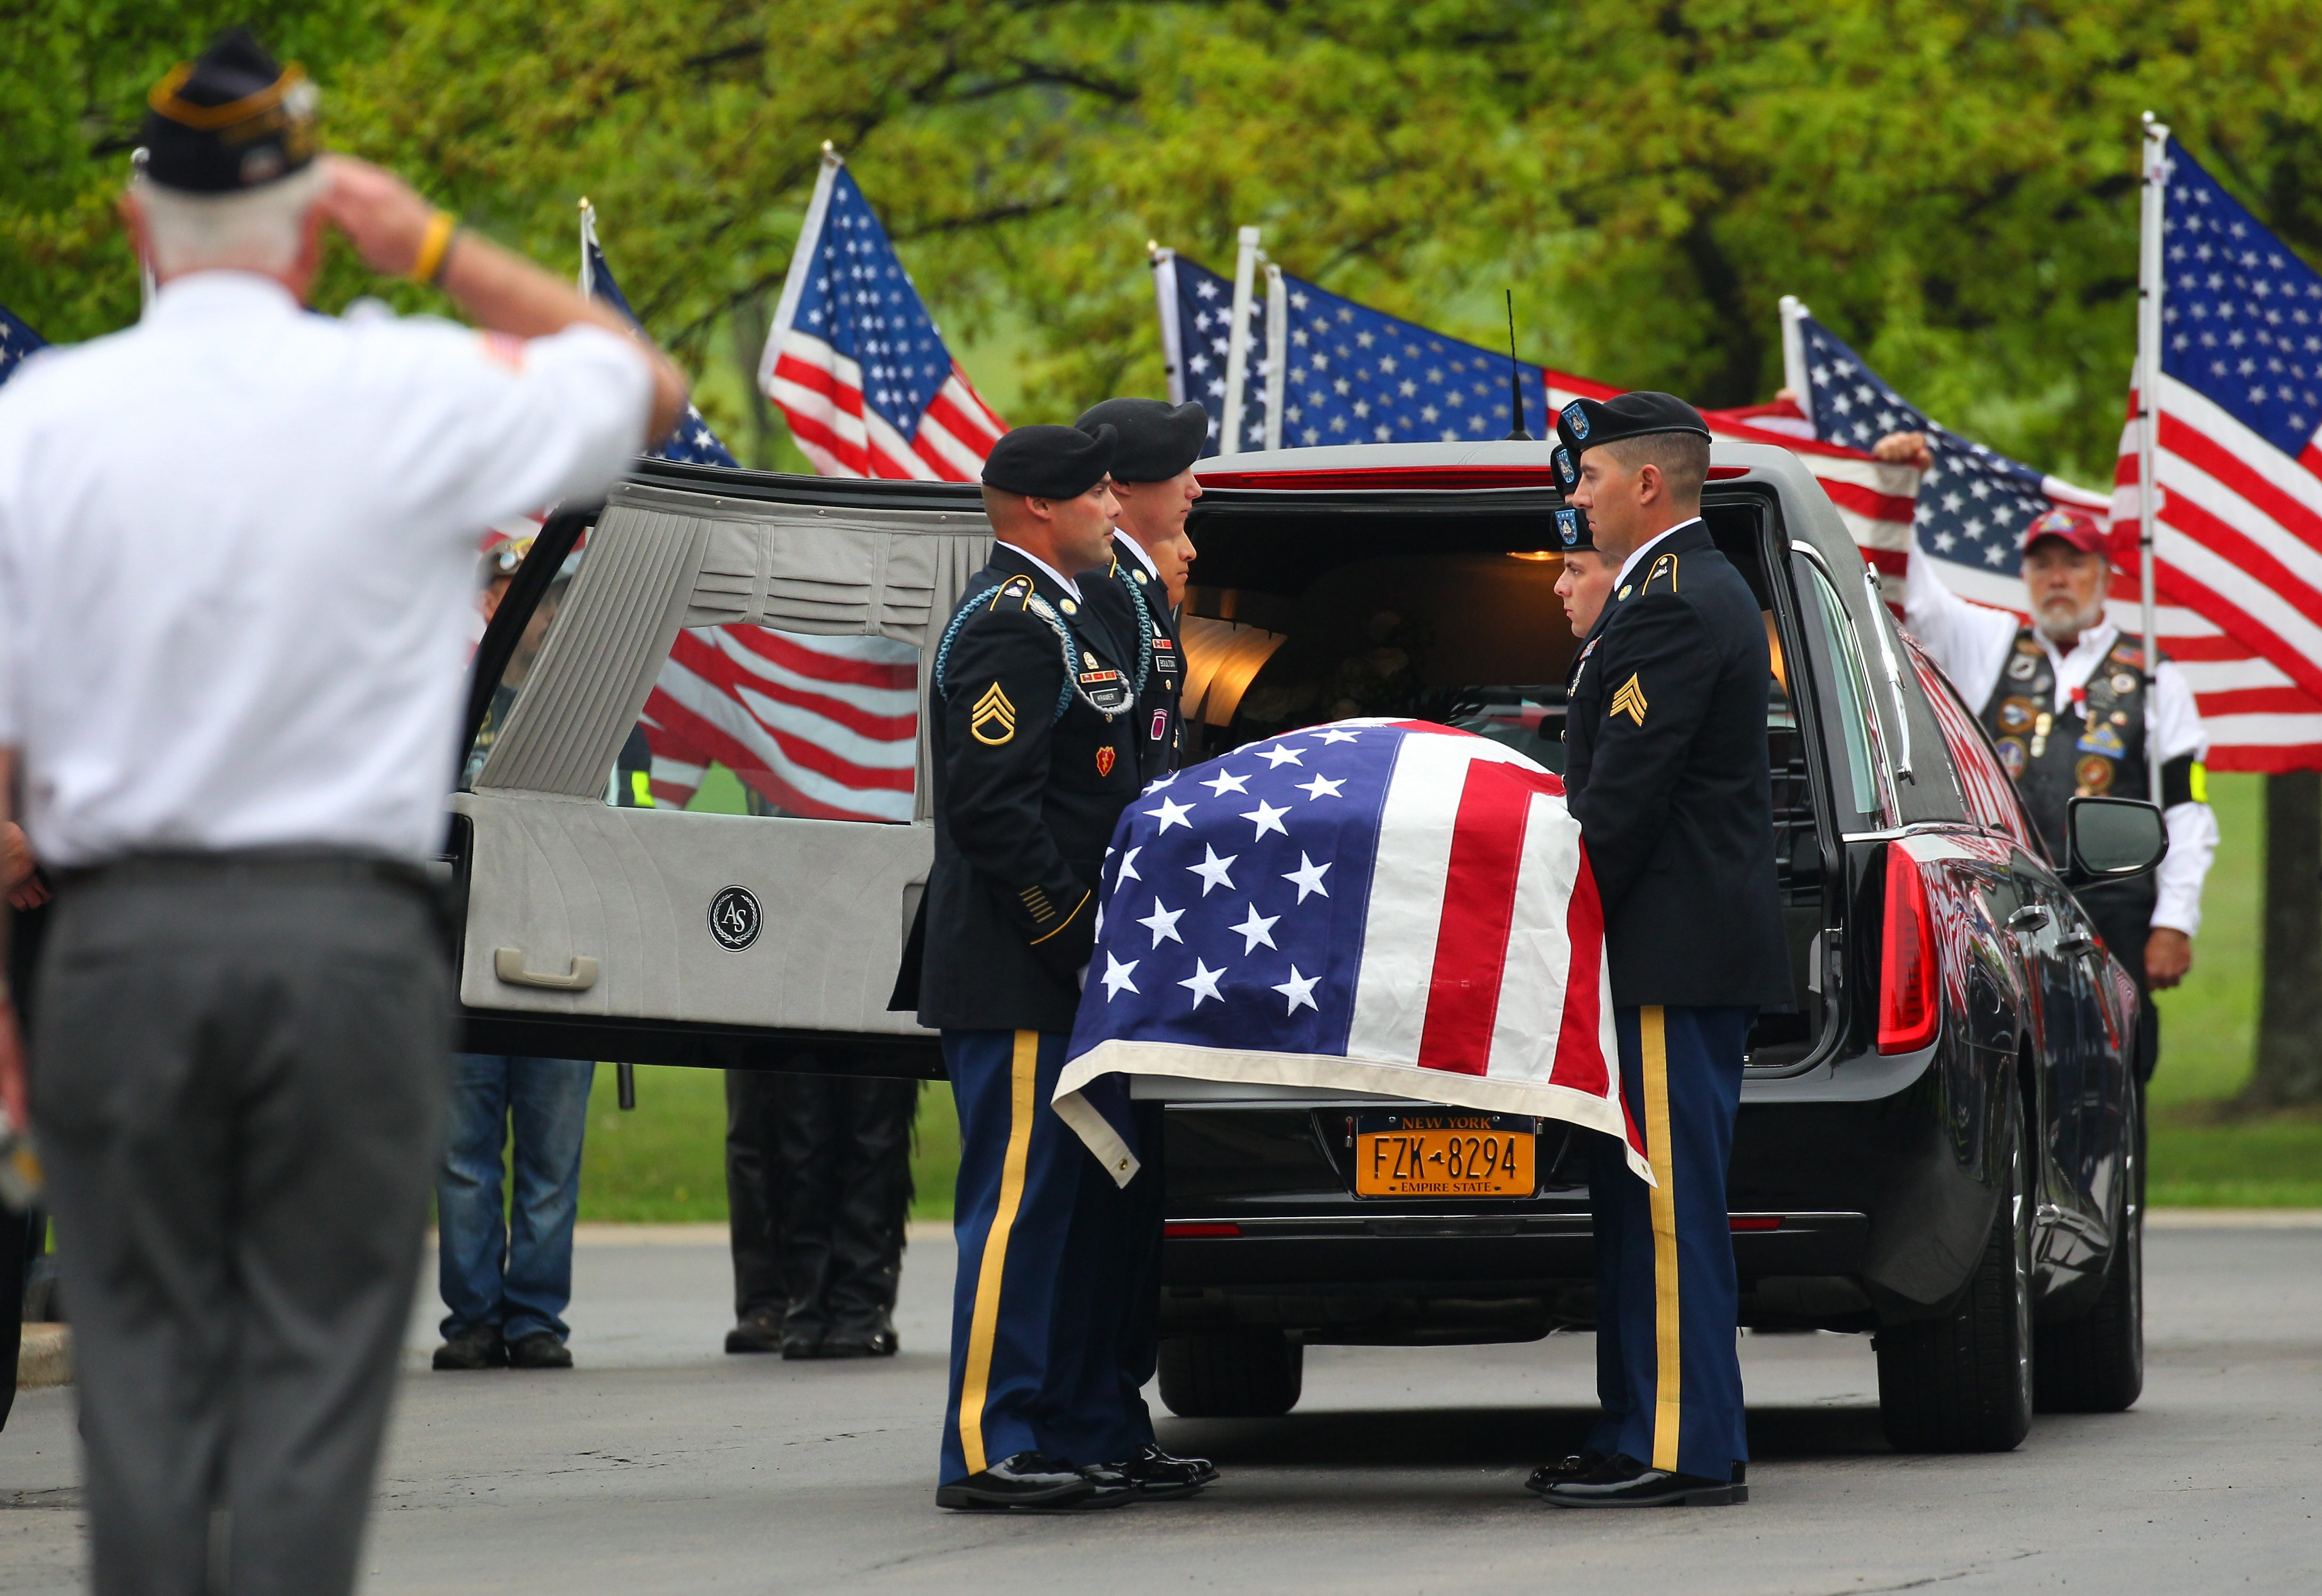 Servicemen remove the flag-draped casket of Capt. John J. Levulis from the hearse at Eden High School on Saturday.